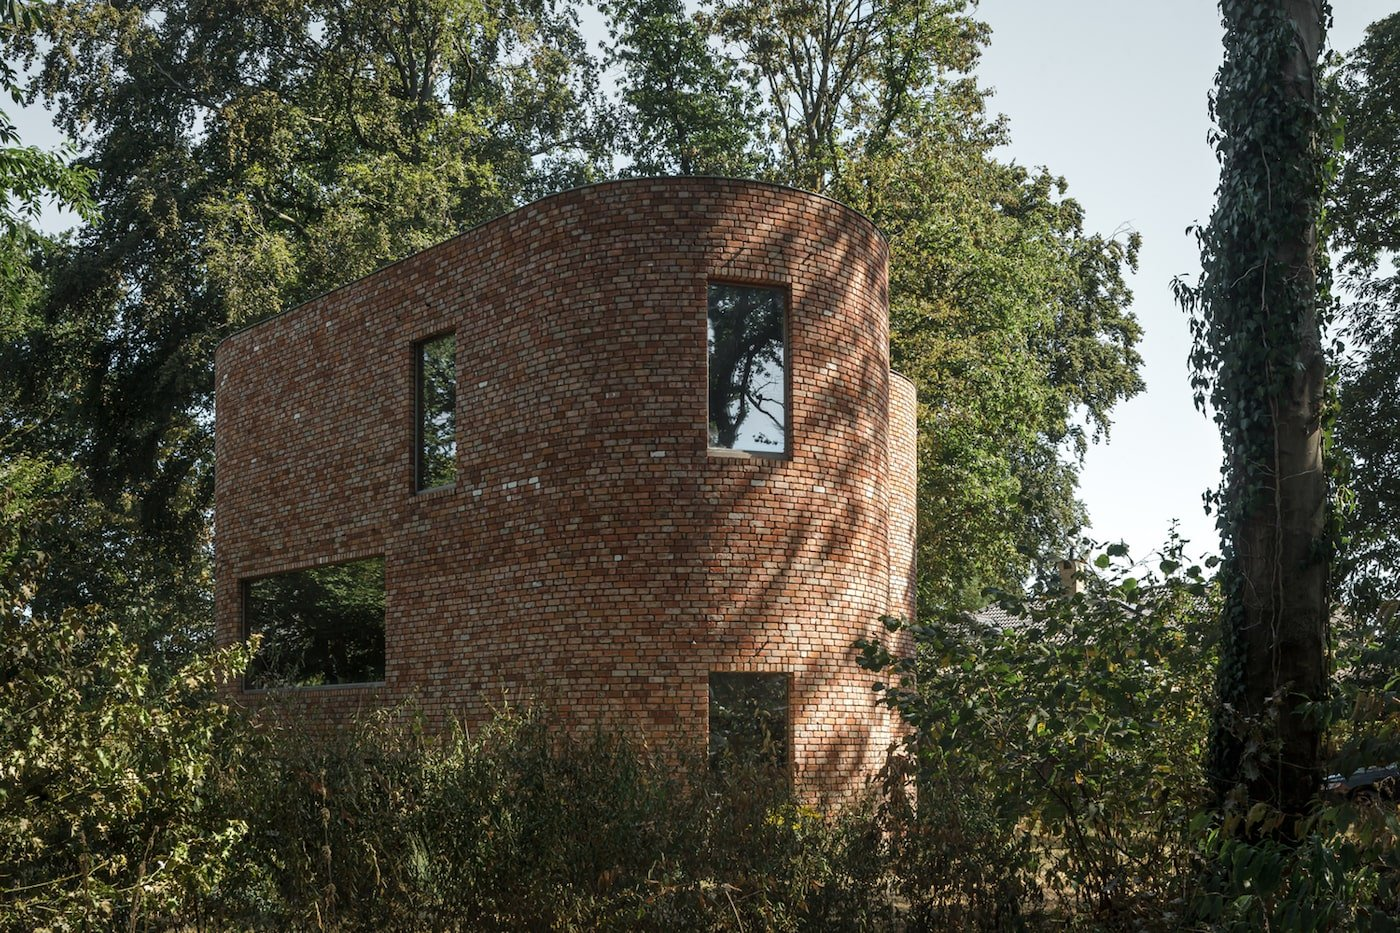 Recycled brick house